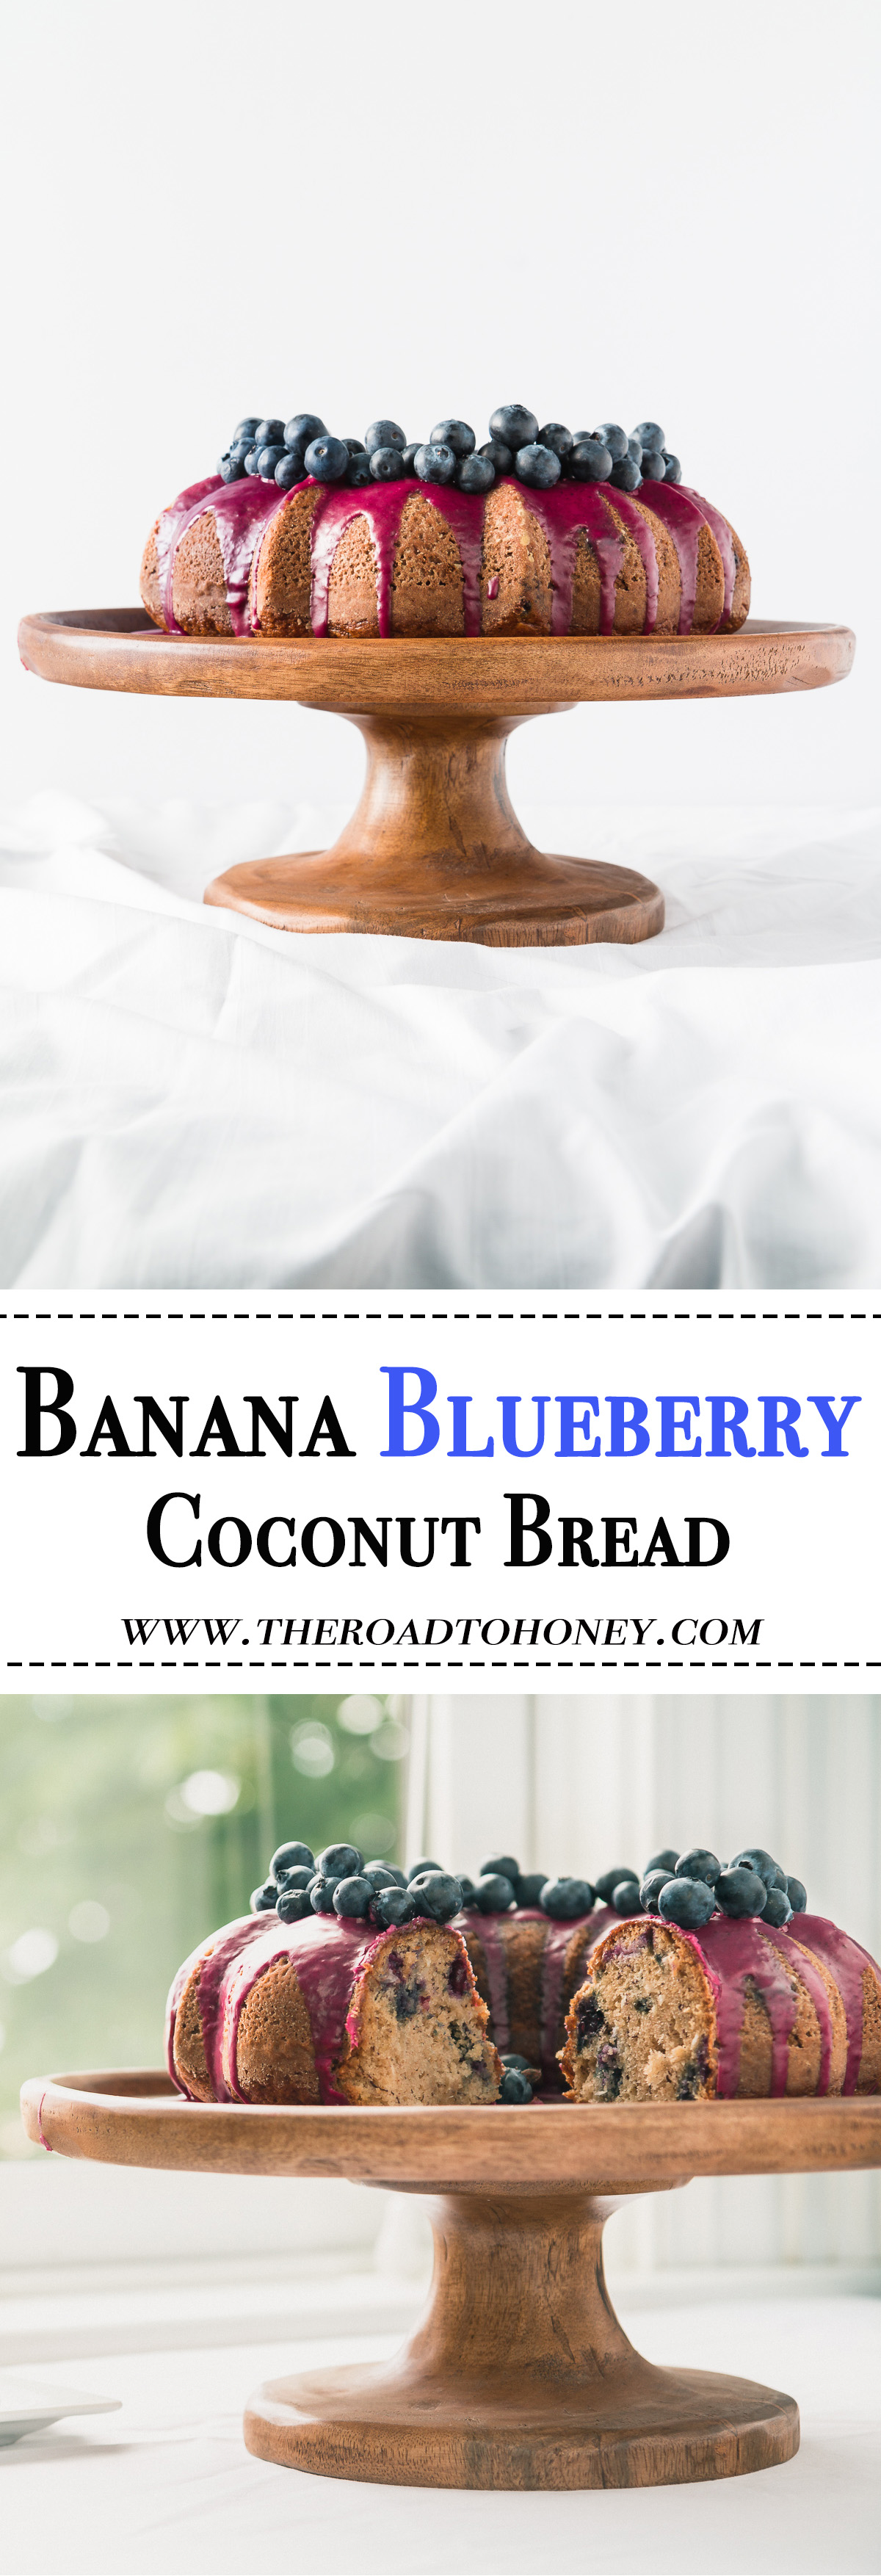 Coconut Banana Blueberry Bread - This super moist coconut banana blueberry bread topped with a sweet blueberry puree & fresh blueberries is the best banana bread you will ever have. Click for RECIPE.